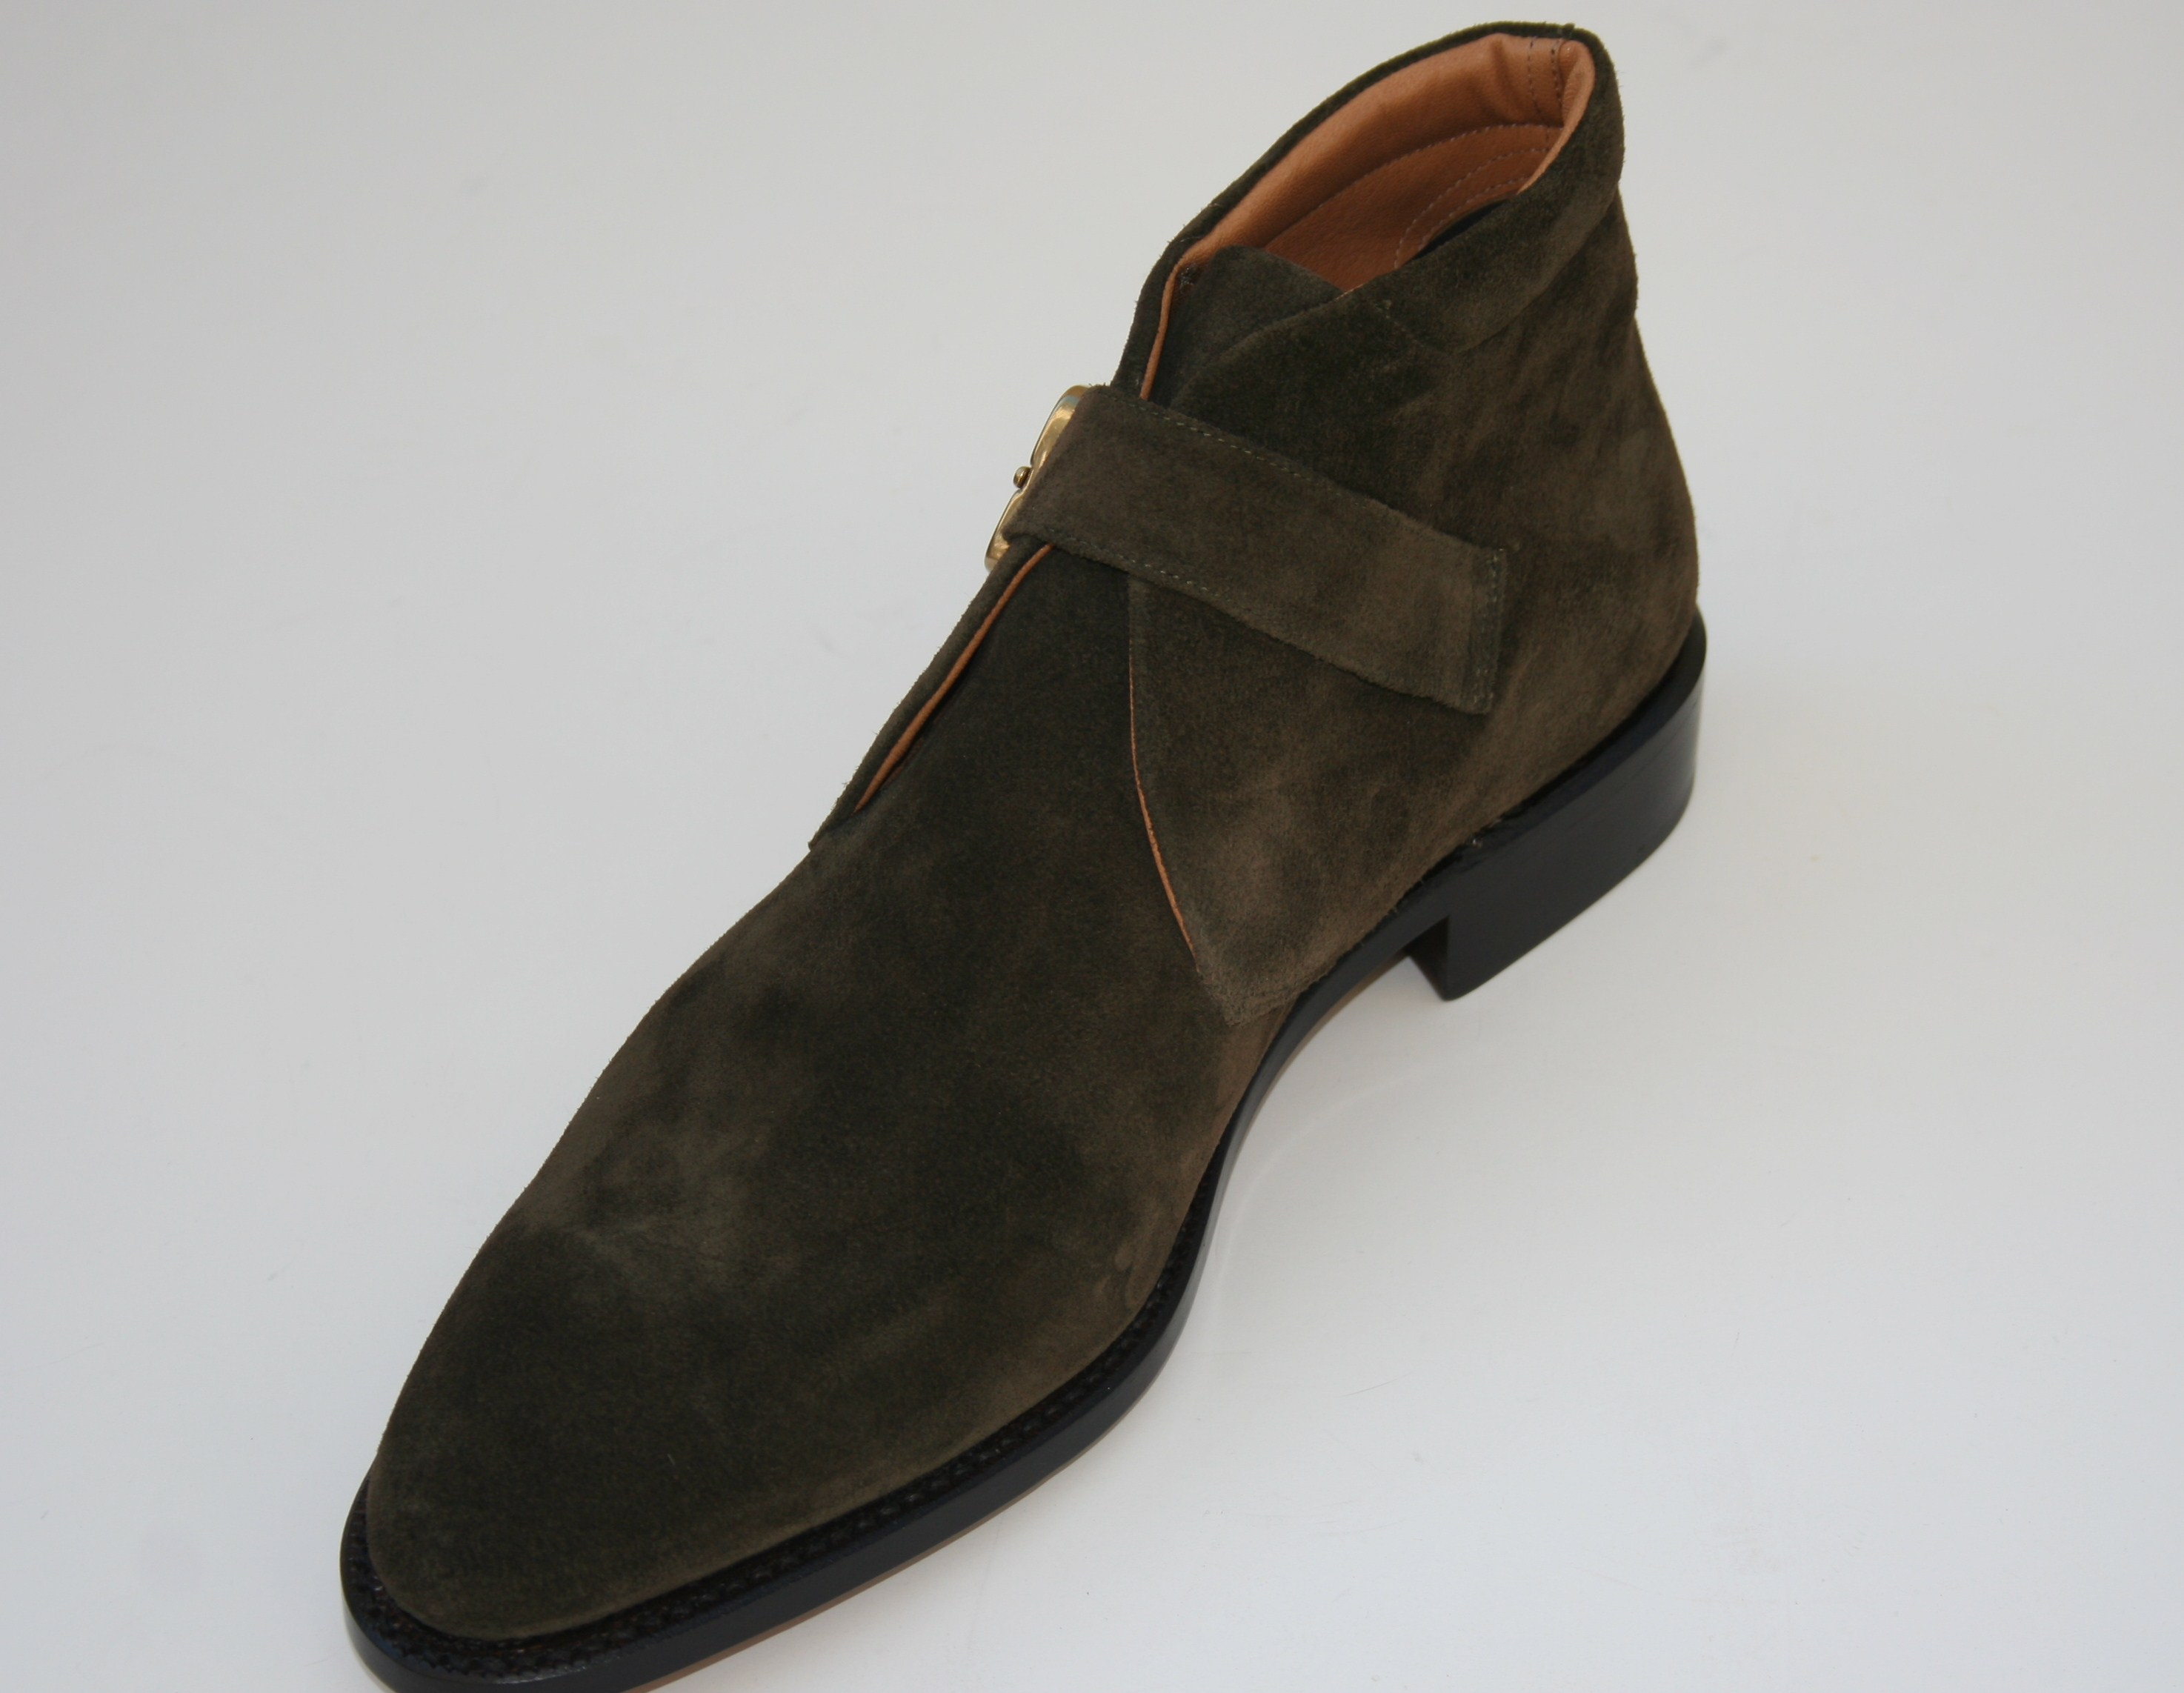 Degas in olive suede